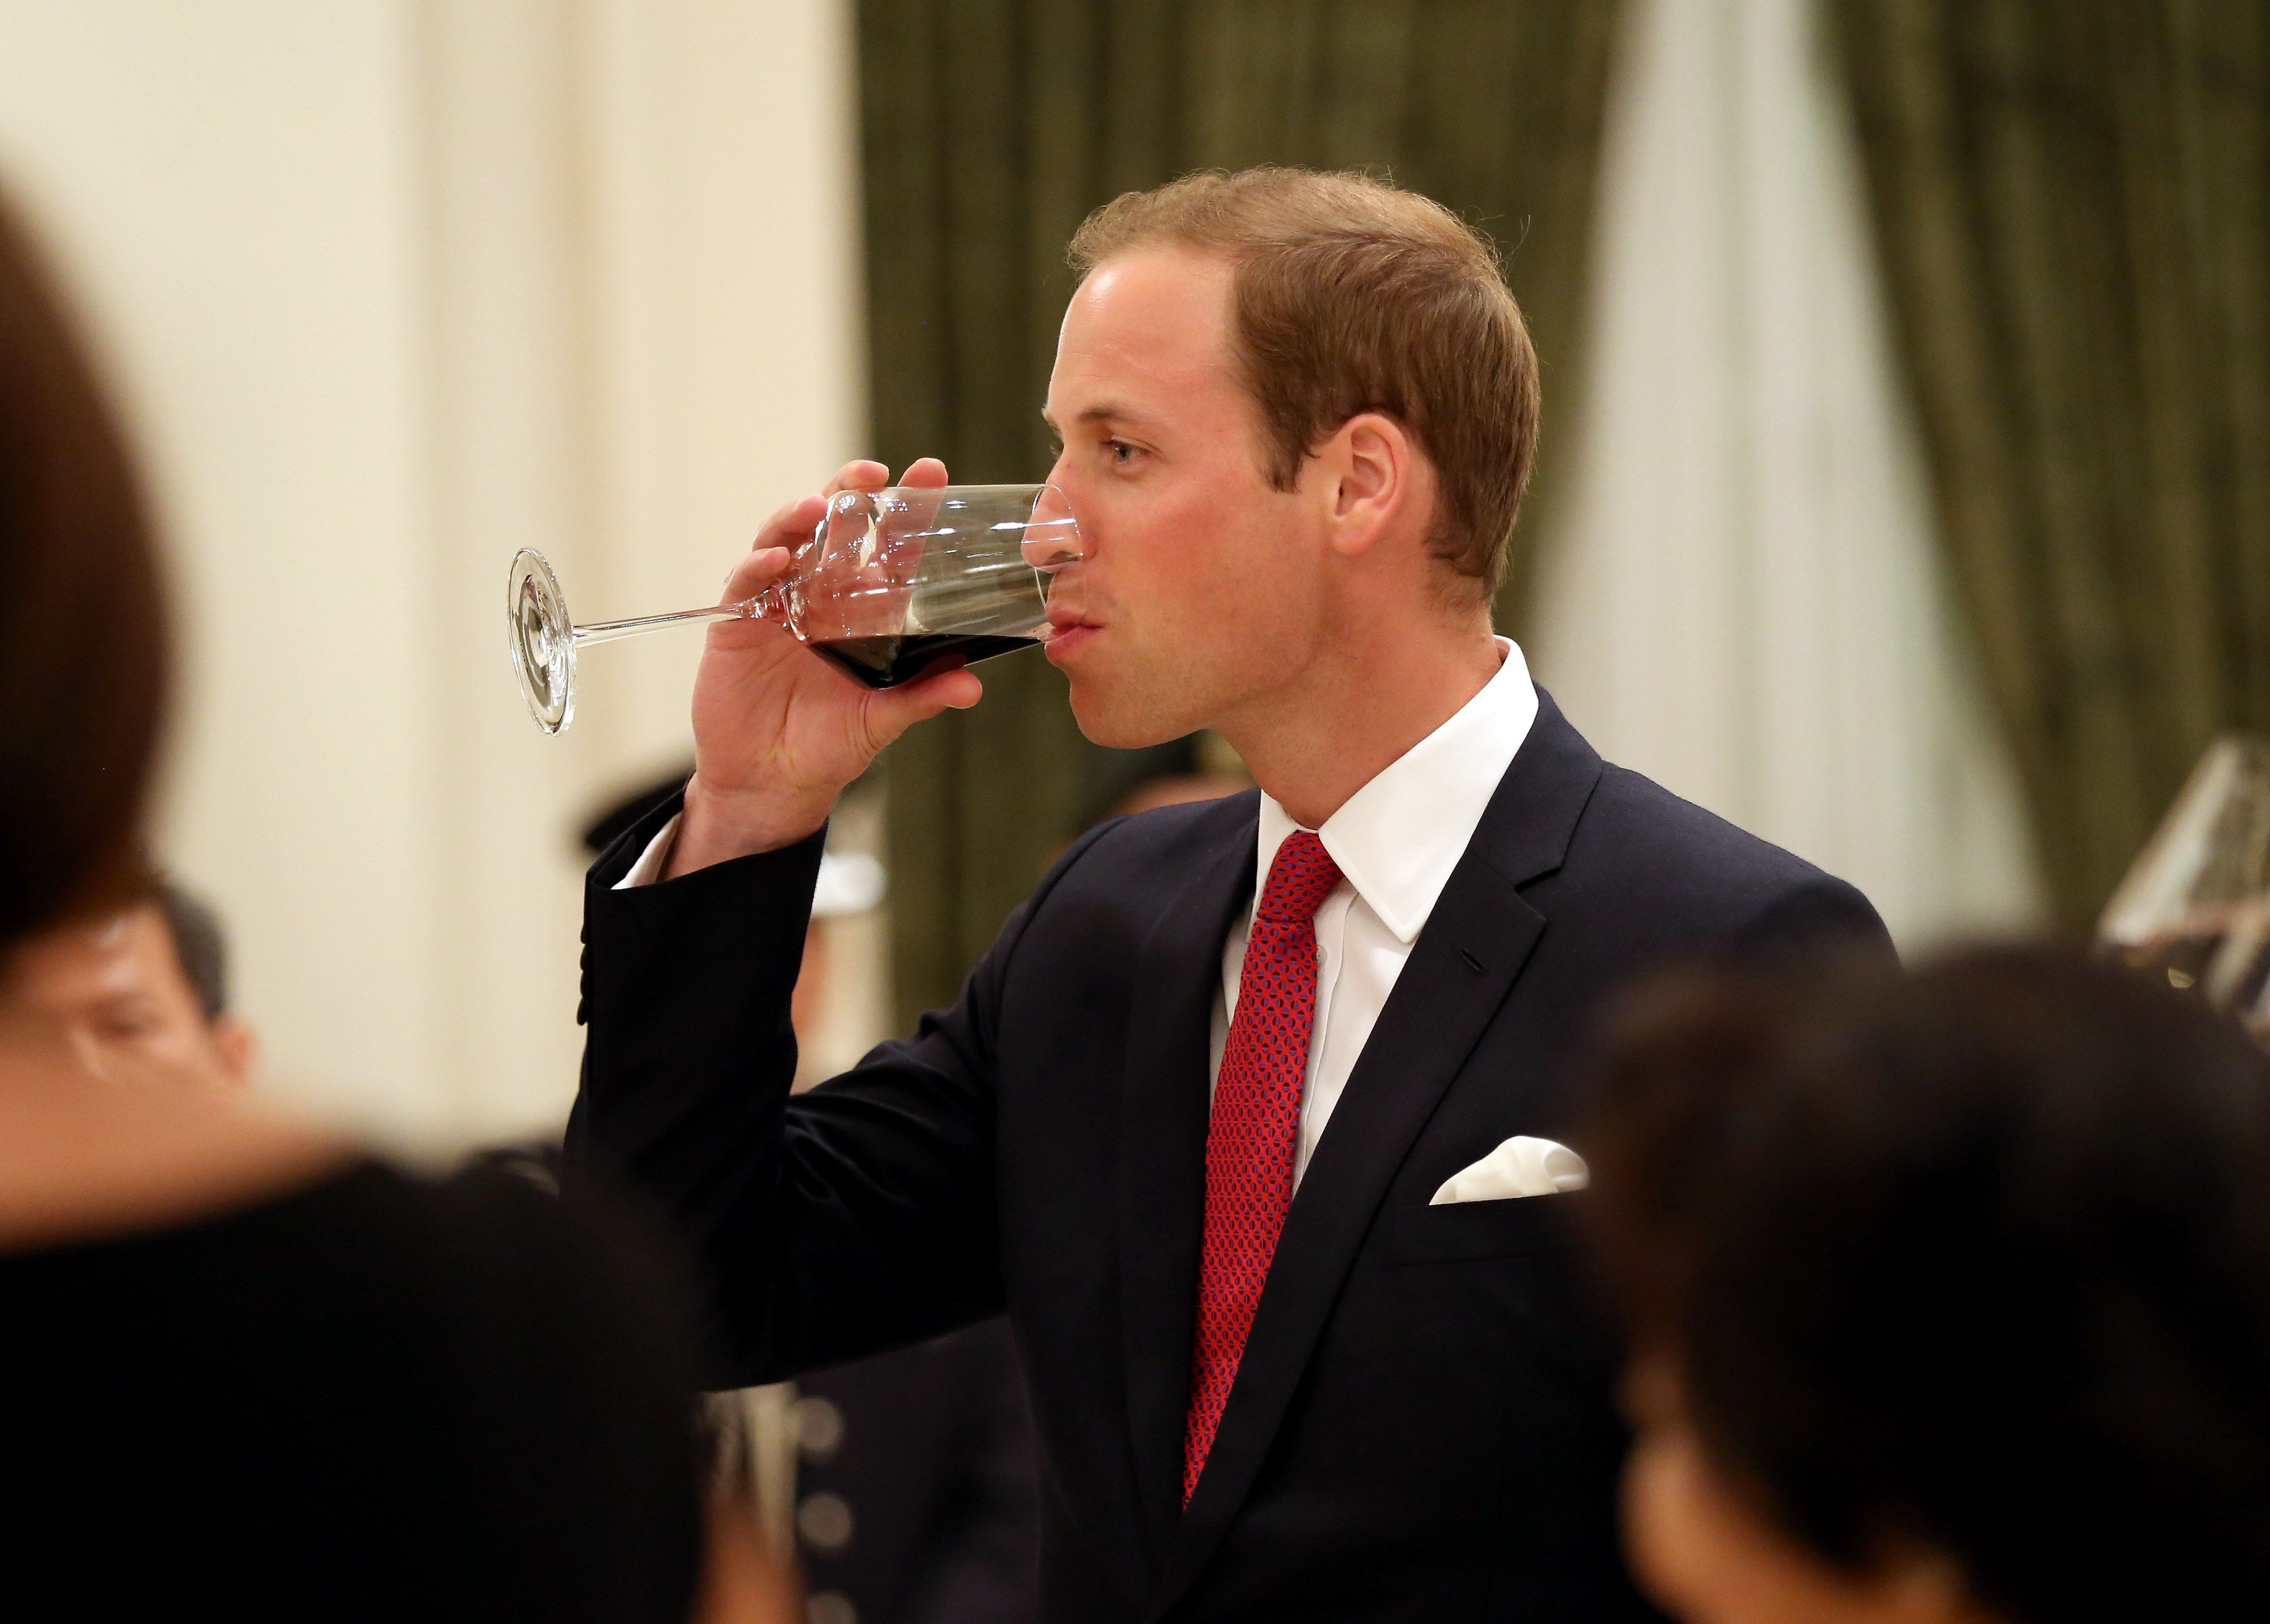 Prince William High Definition Wallpapers